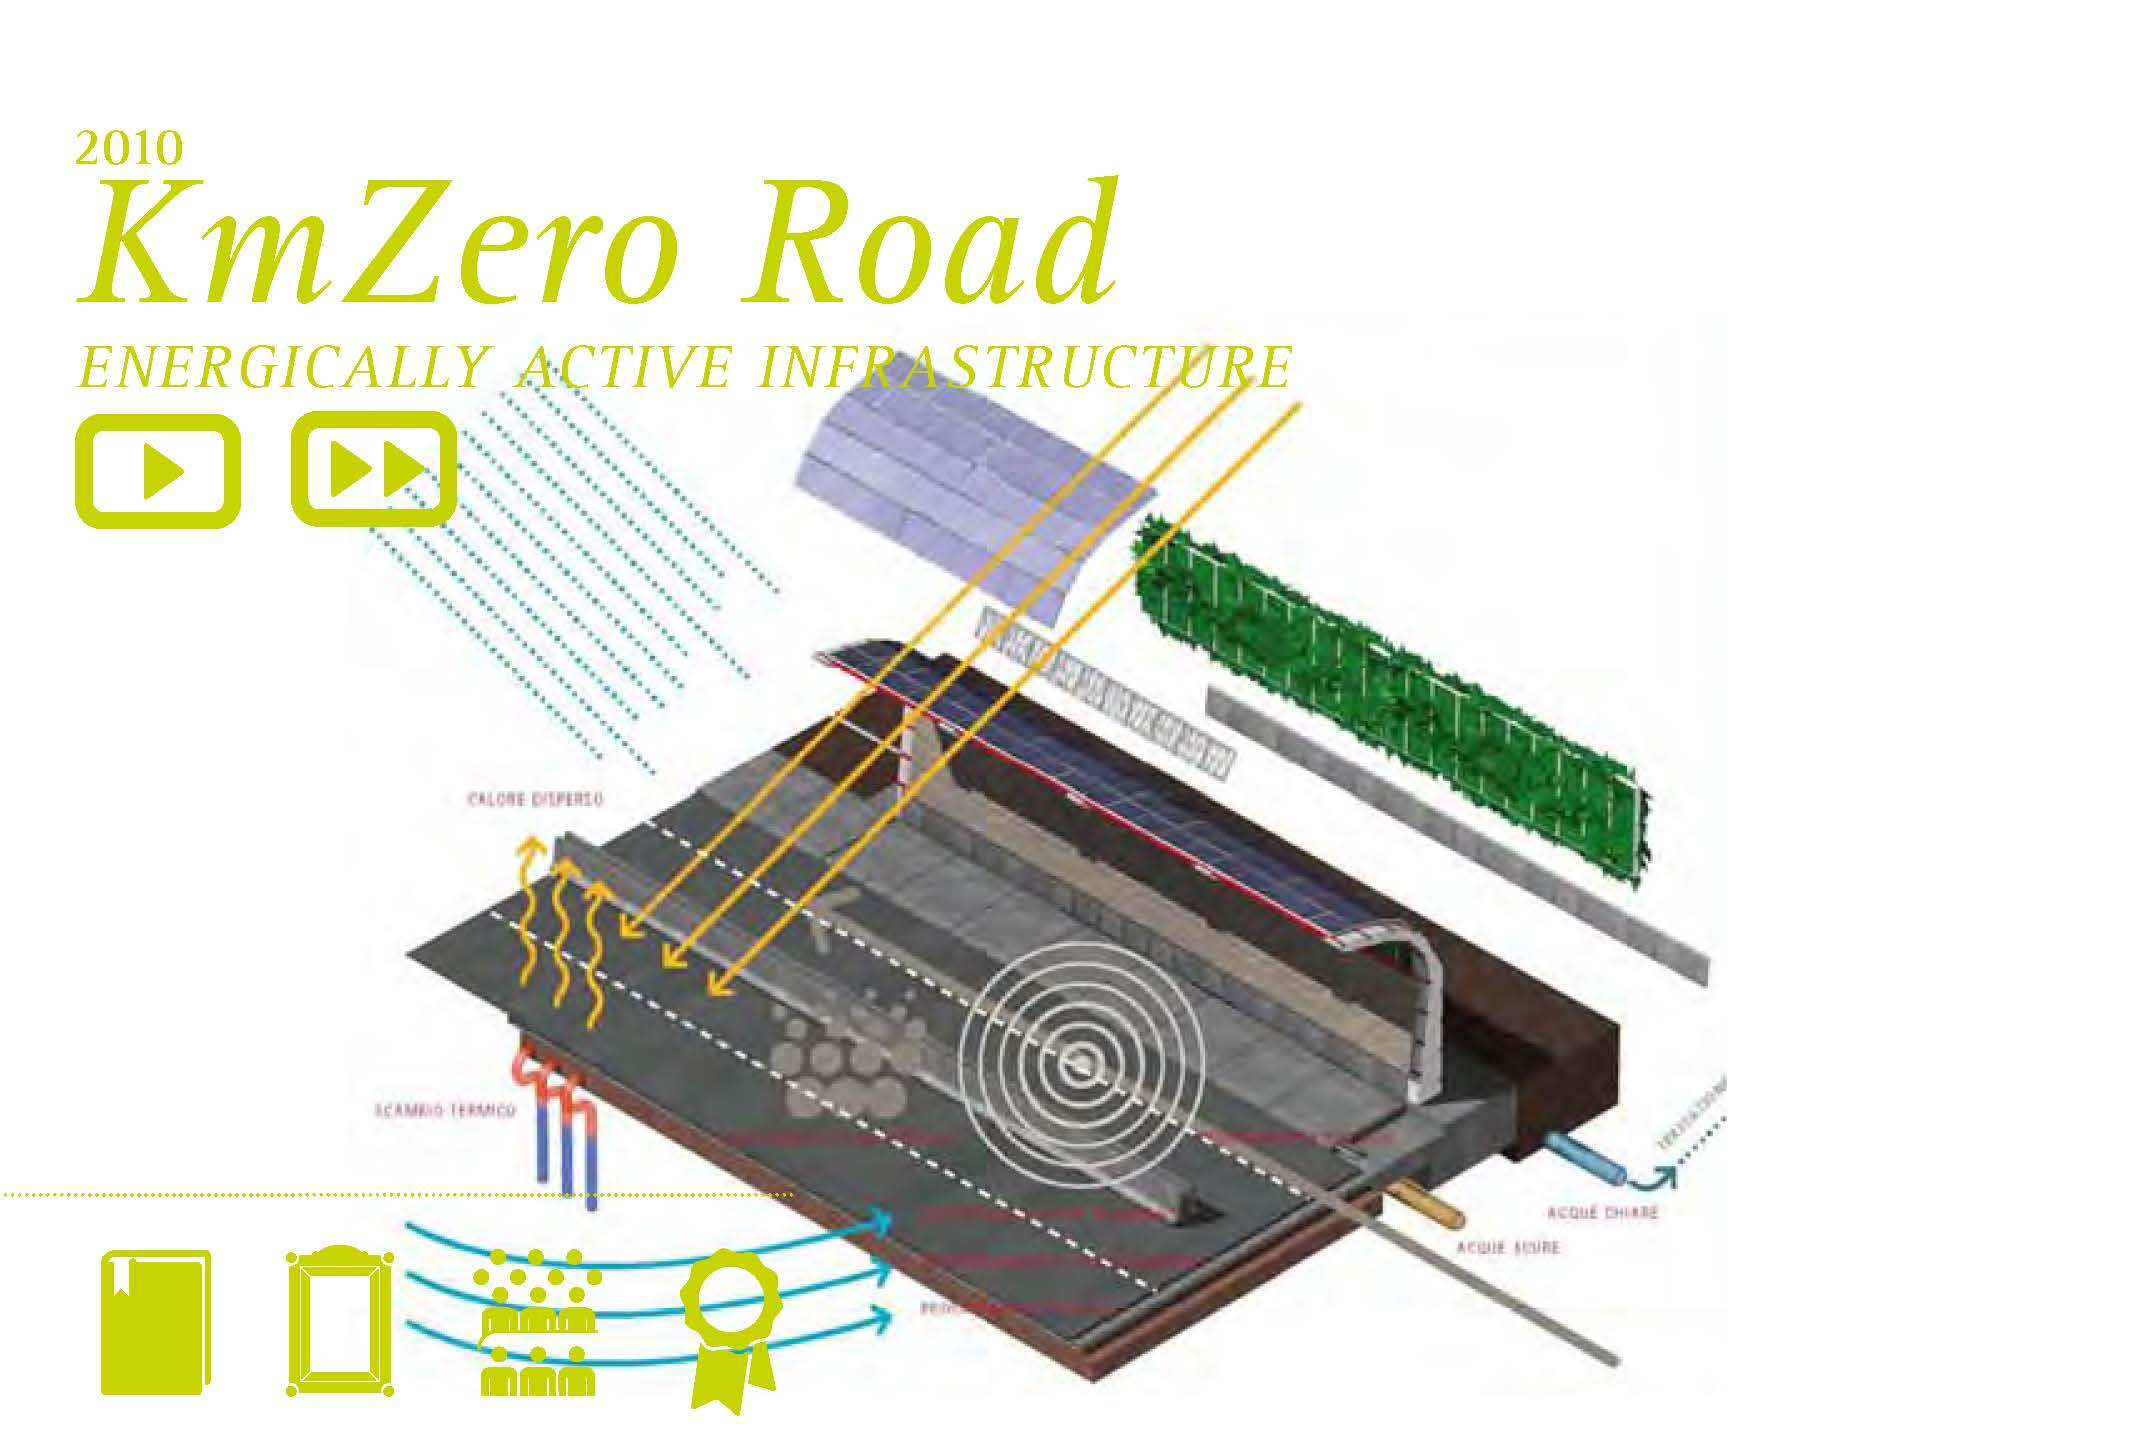 SLIDE-eng Km zero Road (1)